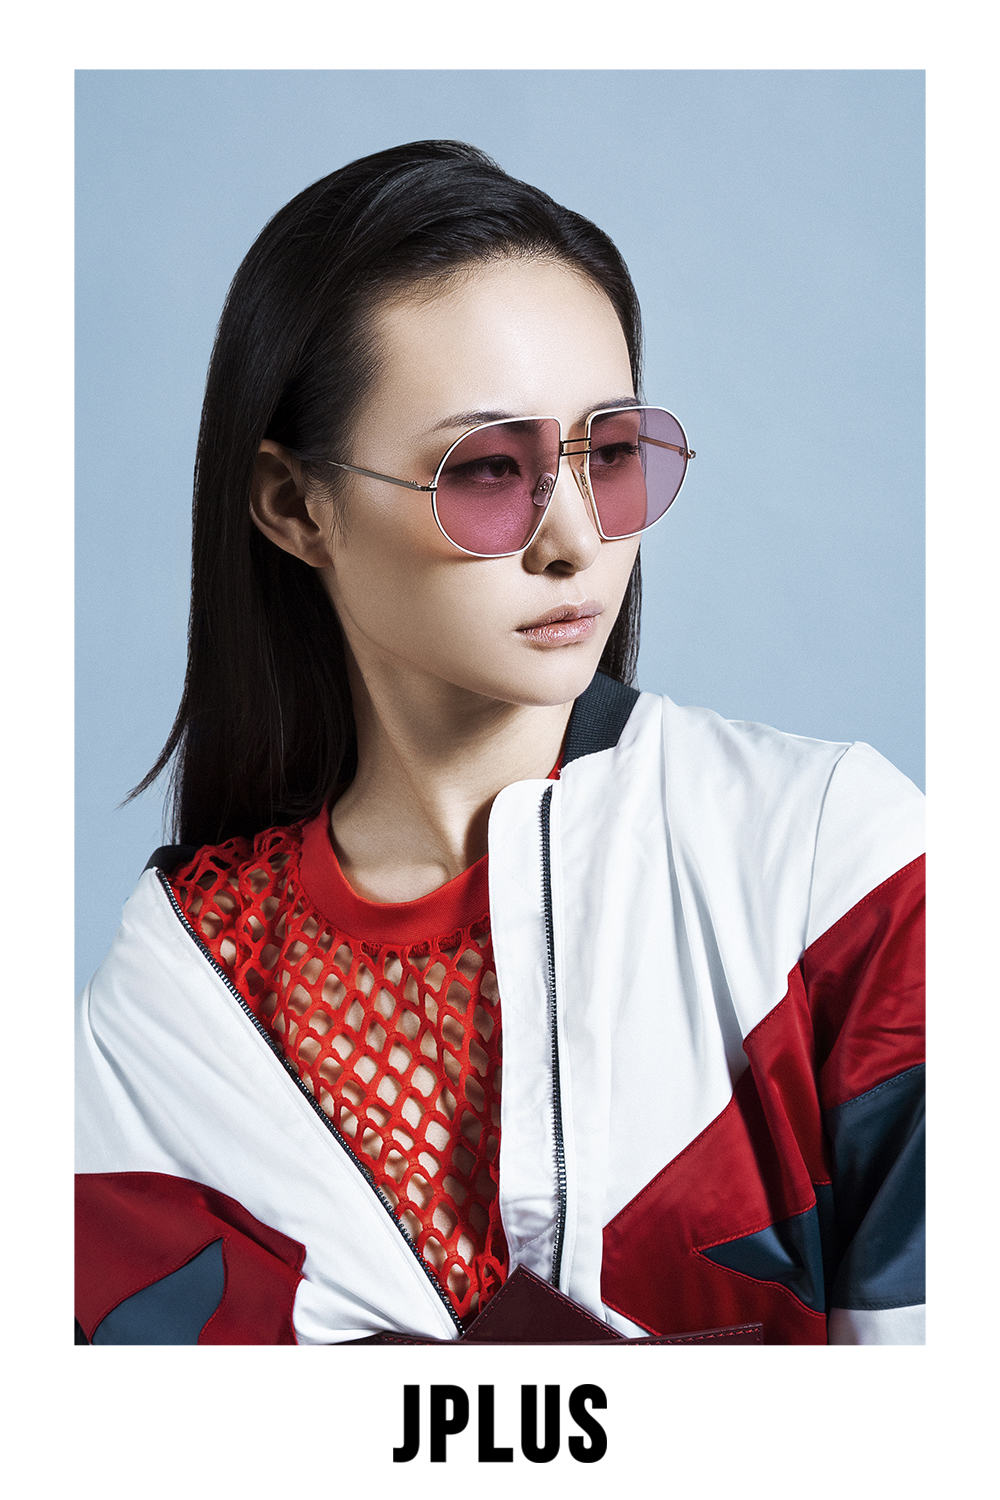 bessie-secor-photography-jplus-sartorialeyes-fashion-adv-eyewear-eyeglasses-collection-calvin klein-liu-jo-moschino